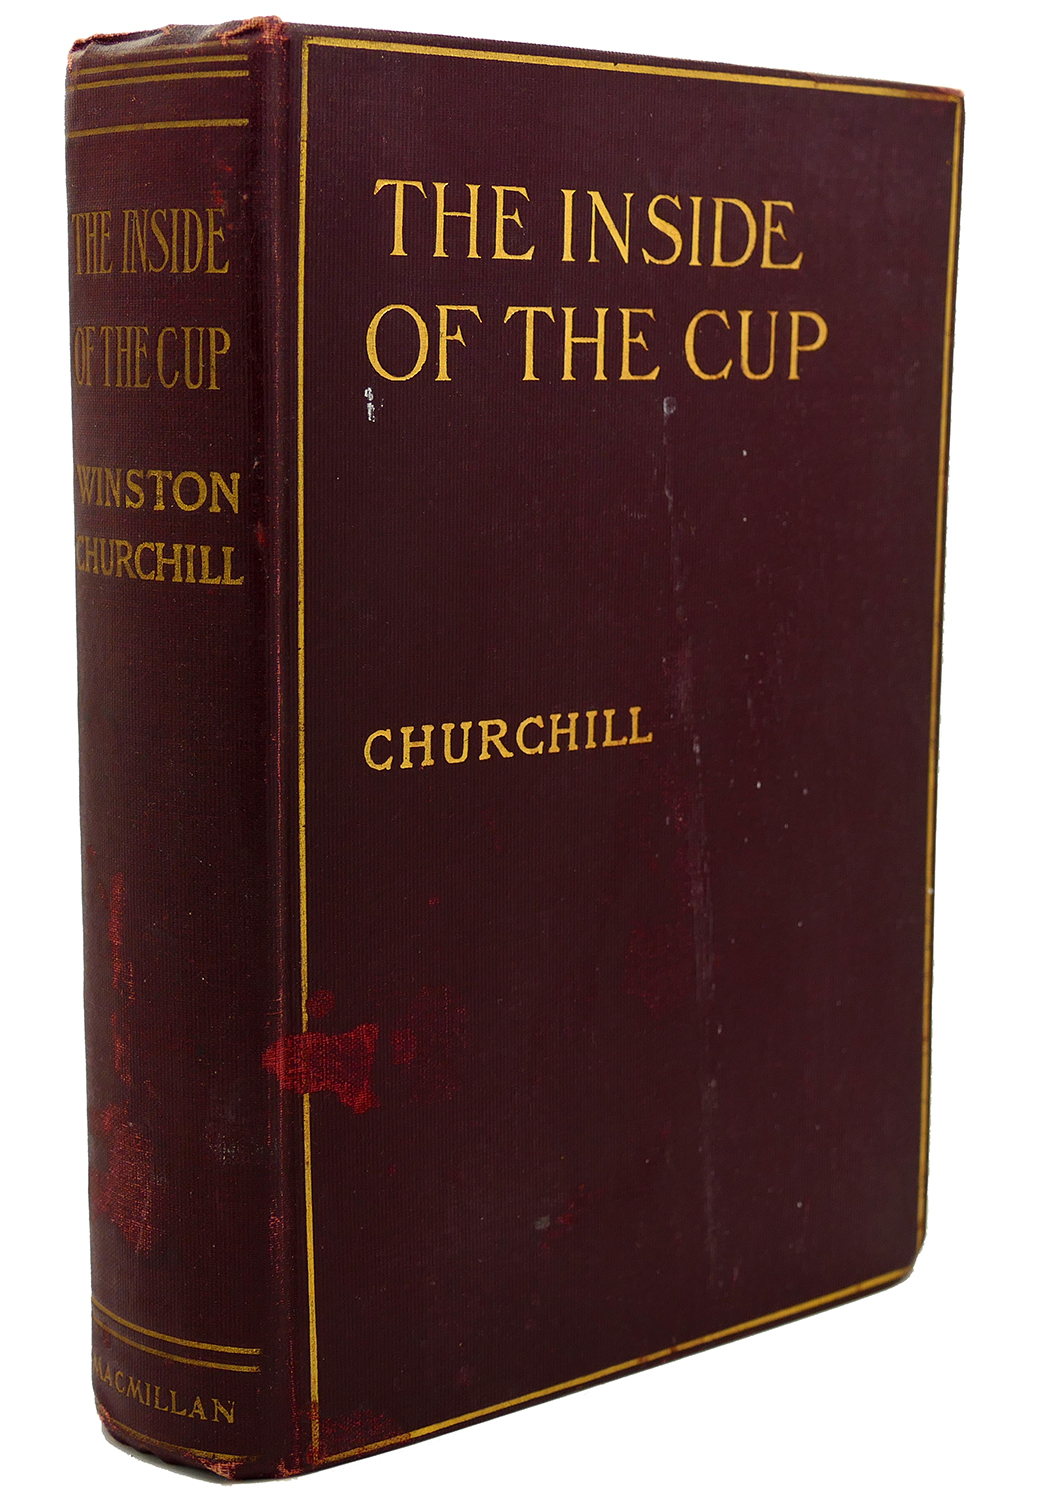 THE INSIDE OF THE CUP Winston Churchill Howard Giles Hardcover